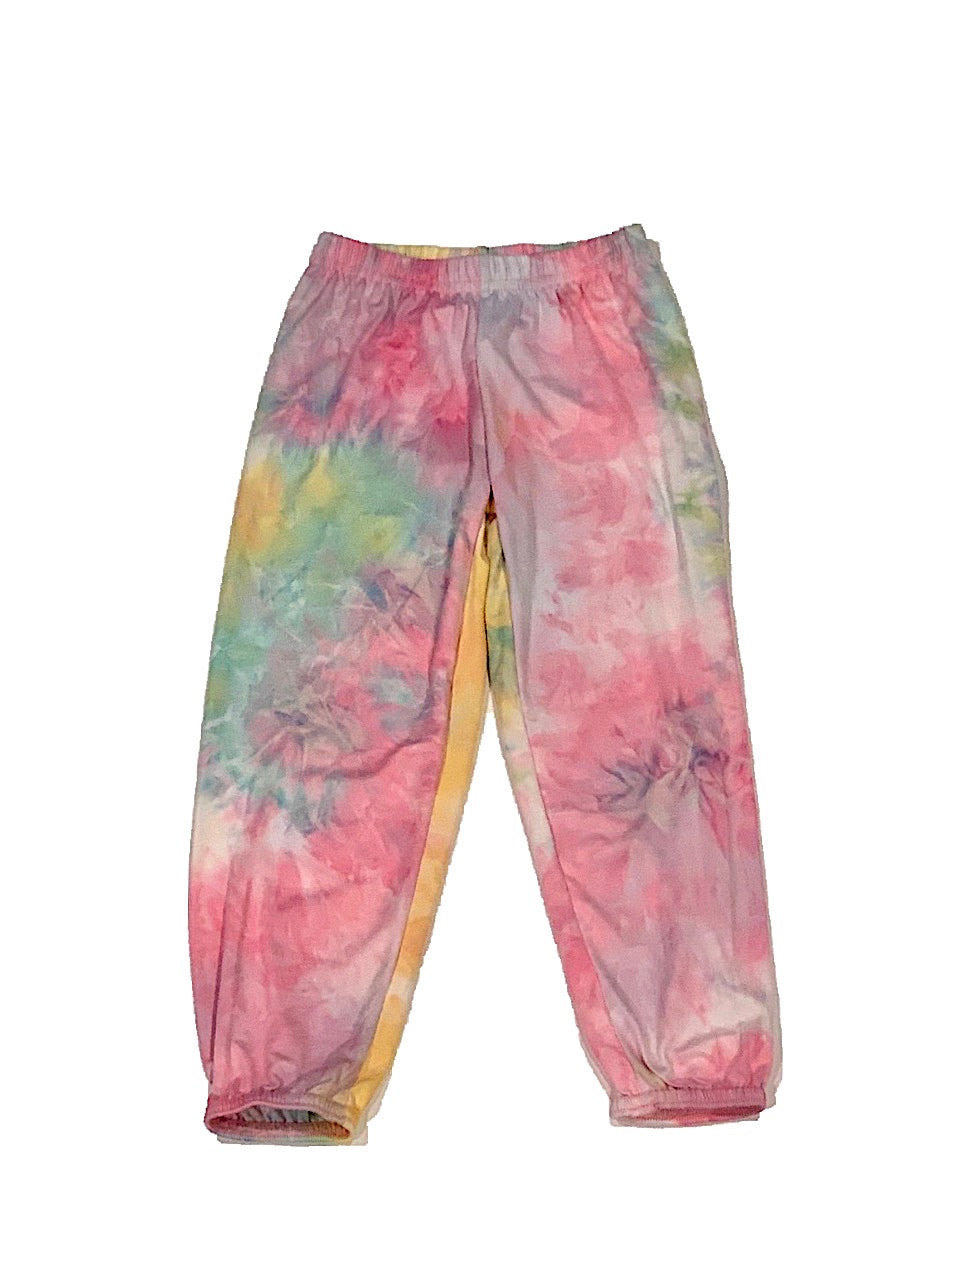 Dori Creations Pastel Tie Dye Sweatpants